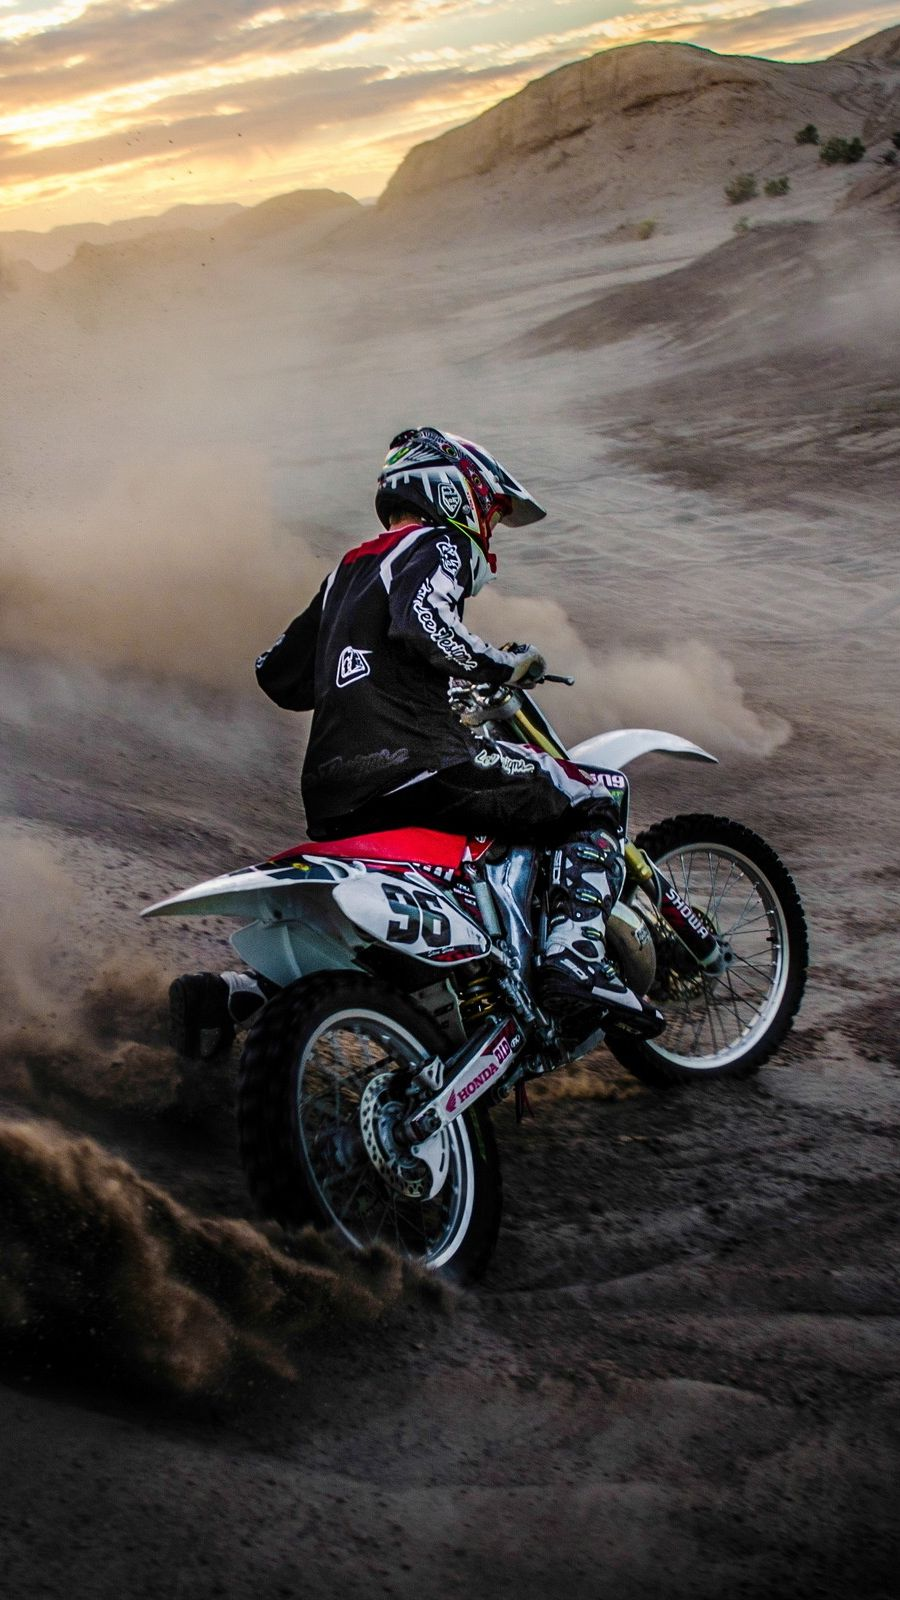 Motocross Mudding IPhone Wallpaper